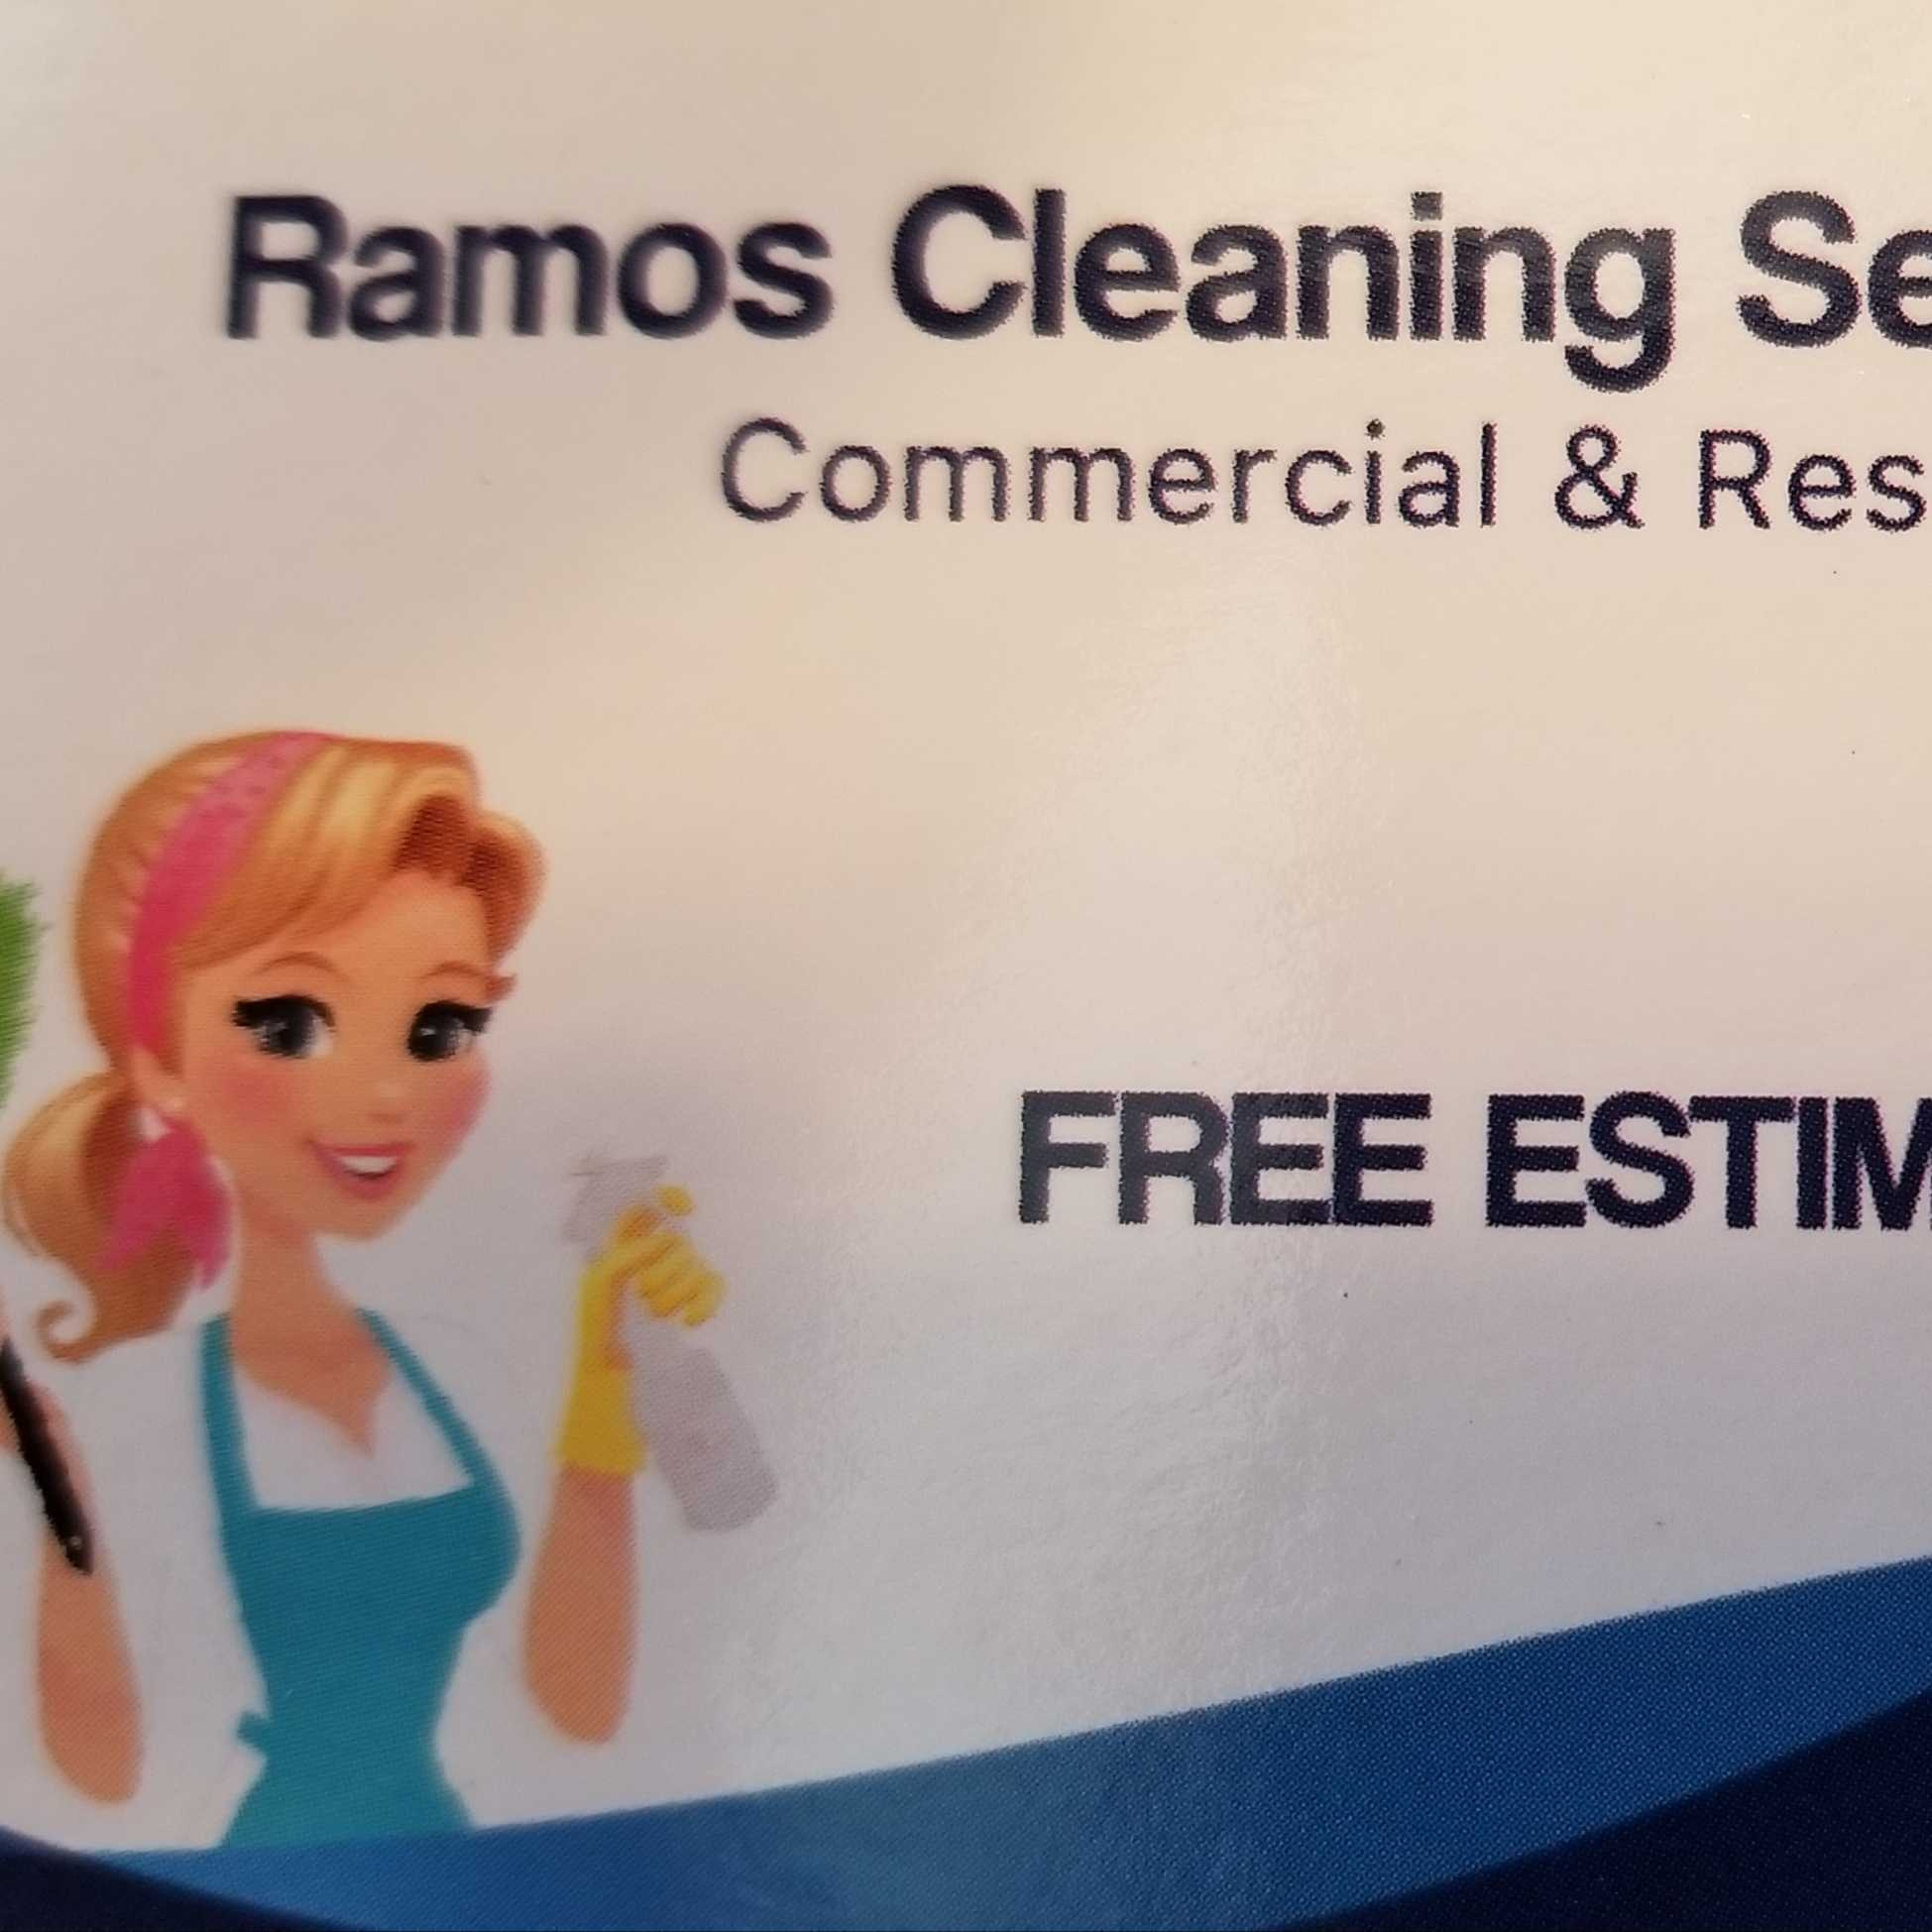 Ramos Cleaning Services LLC